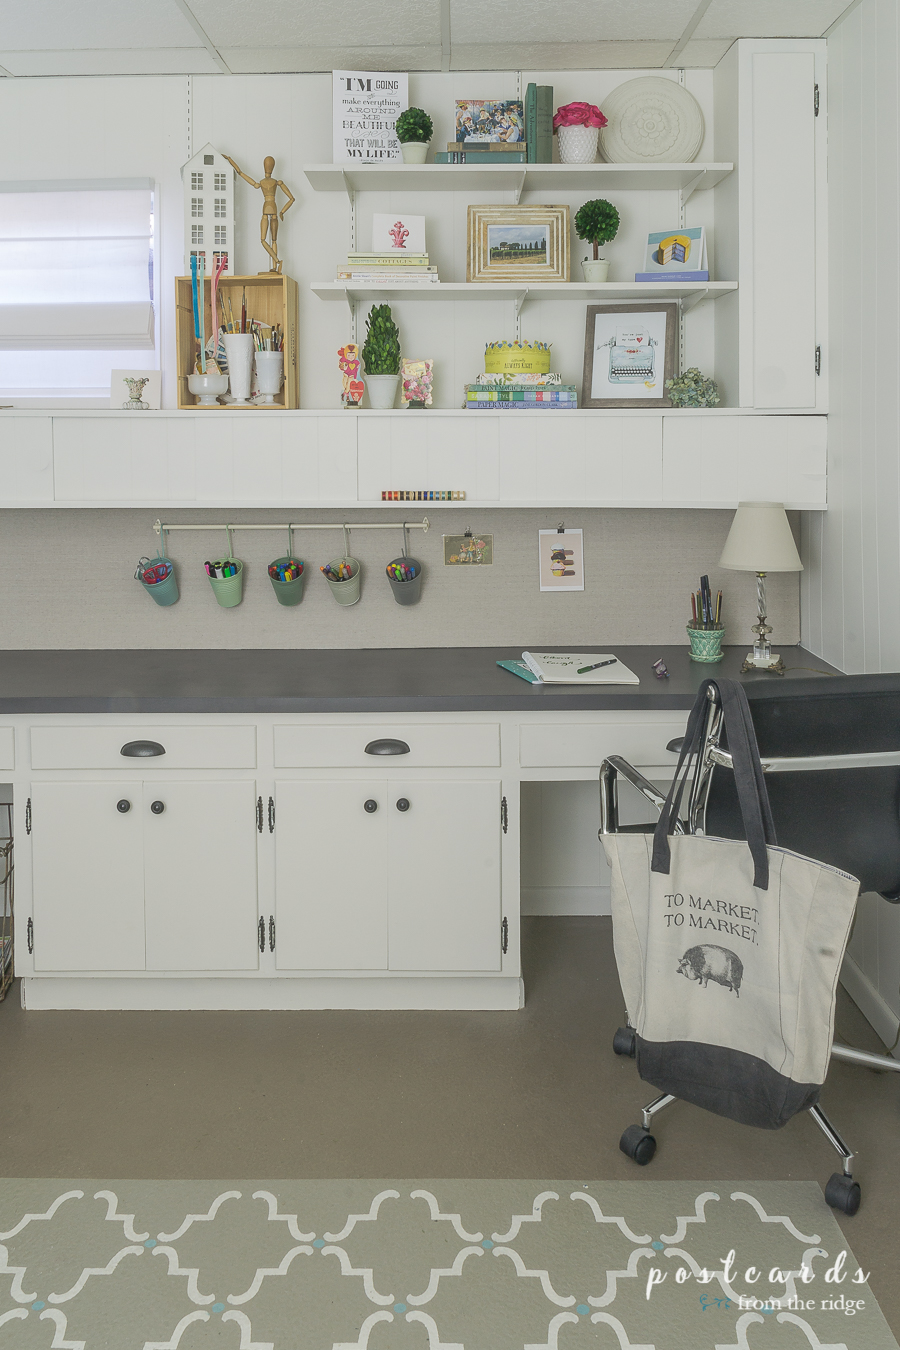 White Cabinets And Shelves With Colorful Accessories In A Studio